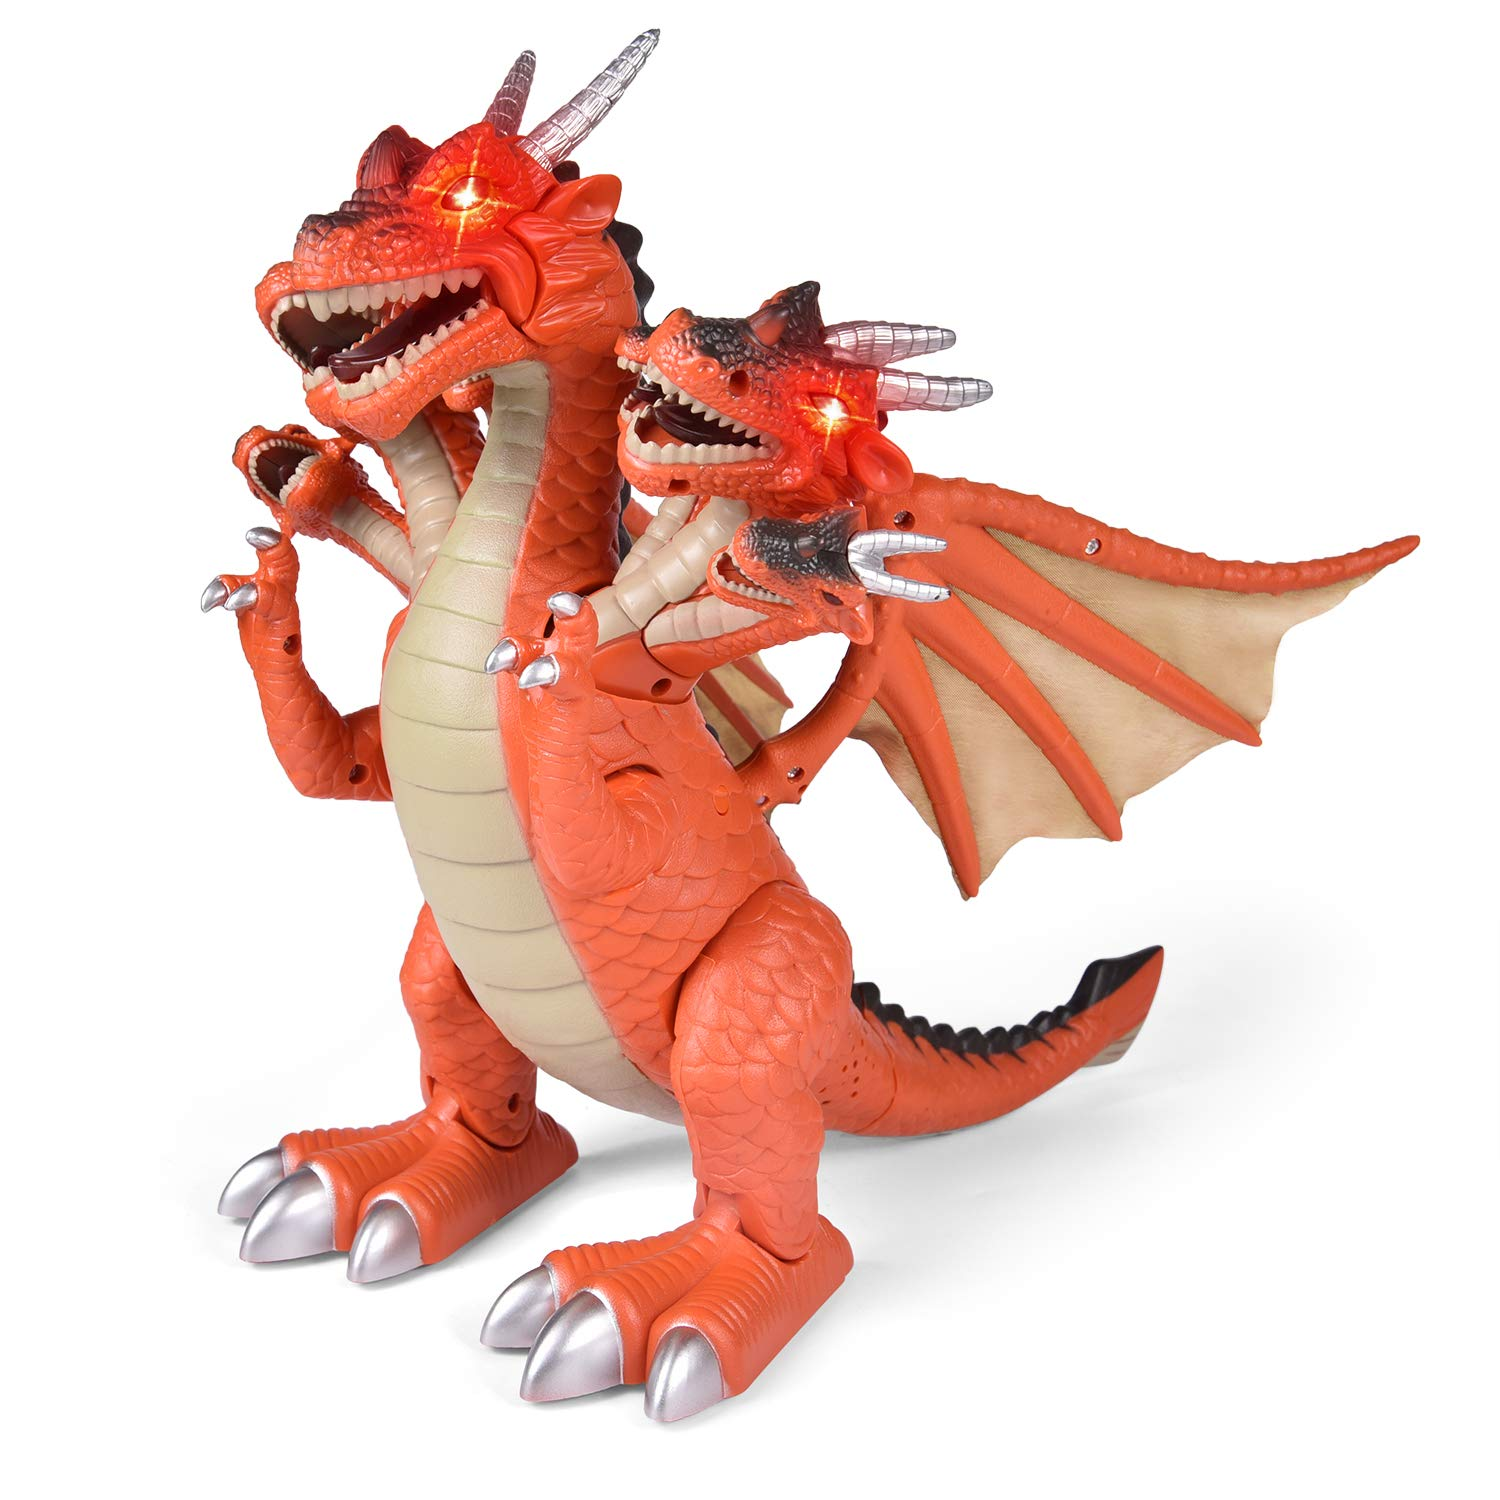 Dragon Toys for Boys, Seven Heads Walking Dragon 11.8''(L)×11.4''(H) Large Size with Lights and Sounds by FUN LITTLE TOYS (Image #1)